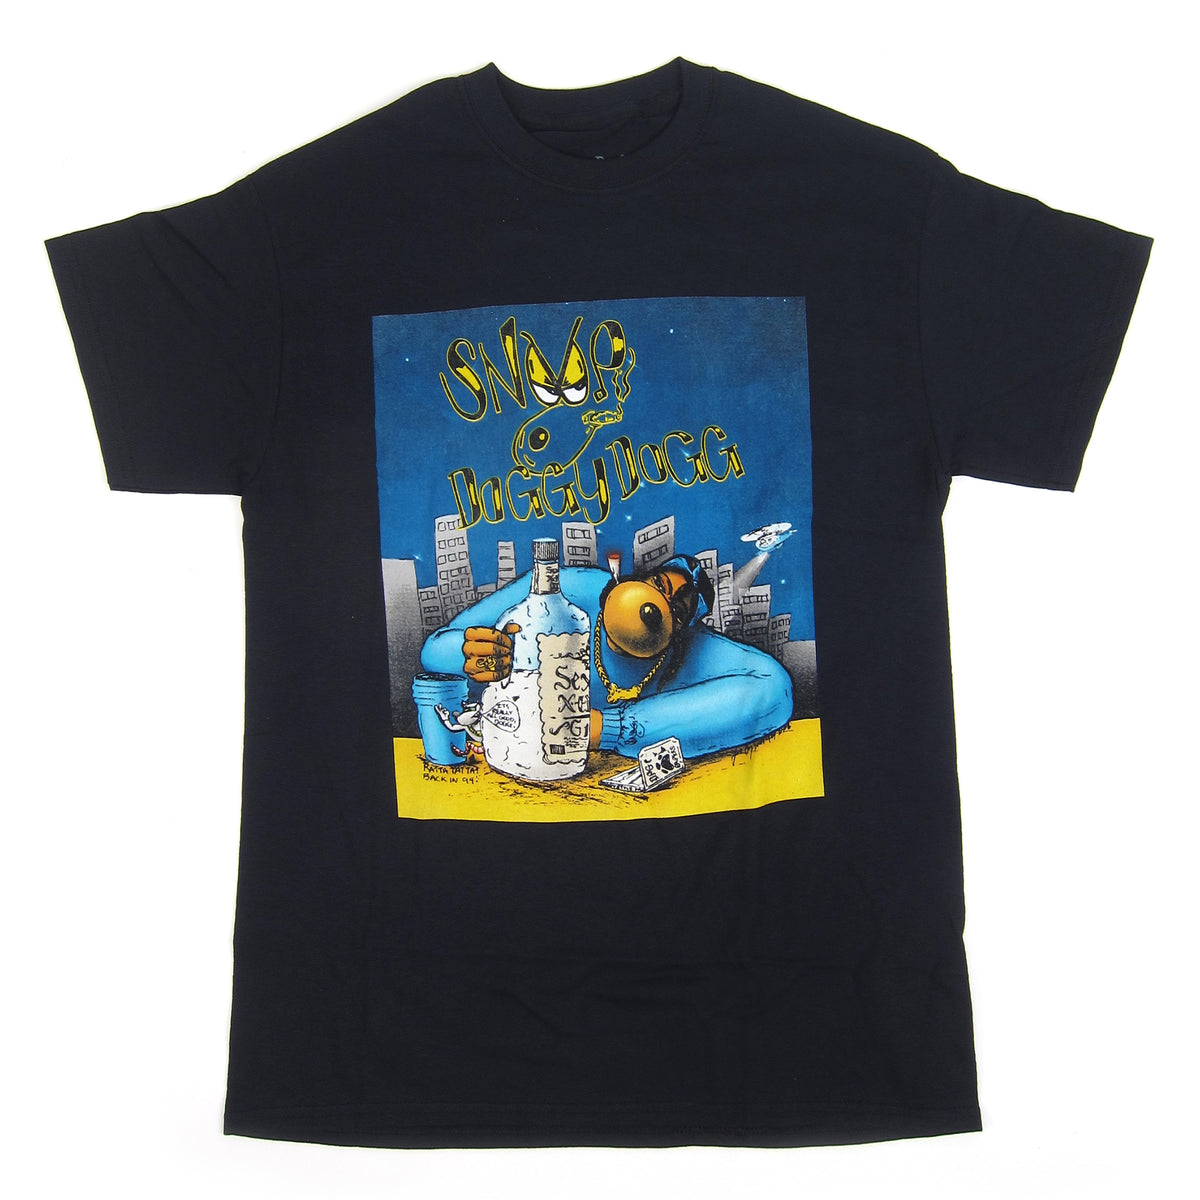 Snoop Dogg: Gin & Juice Shirt - Black